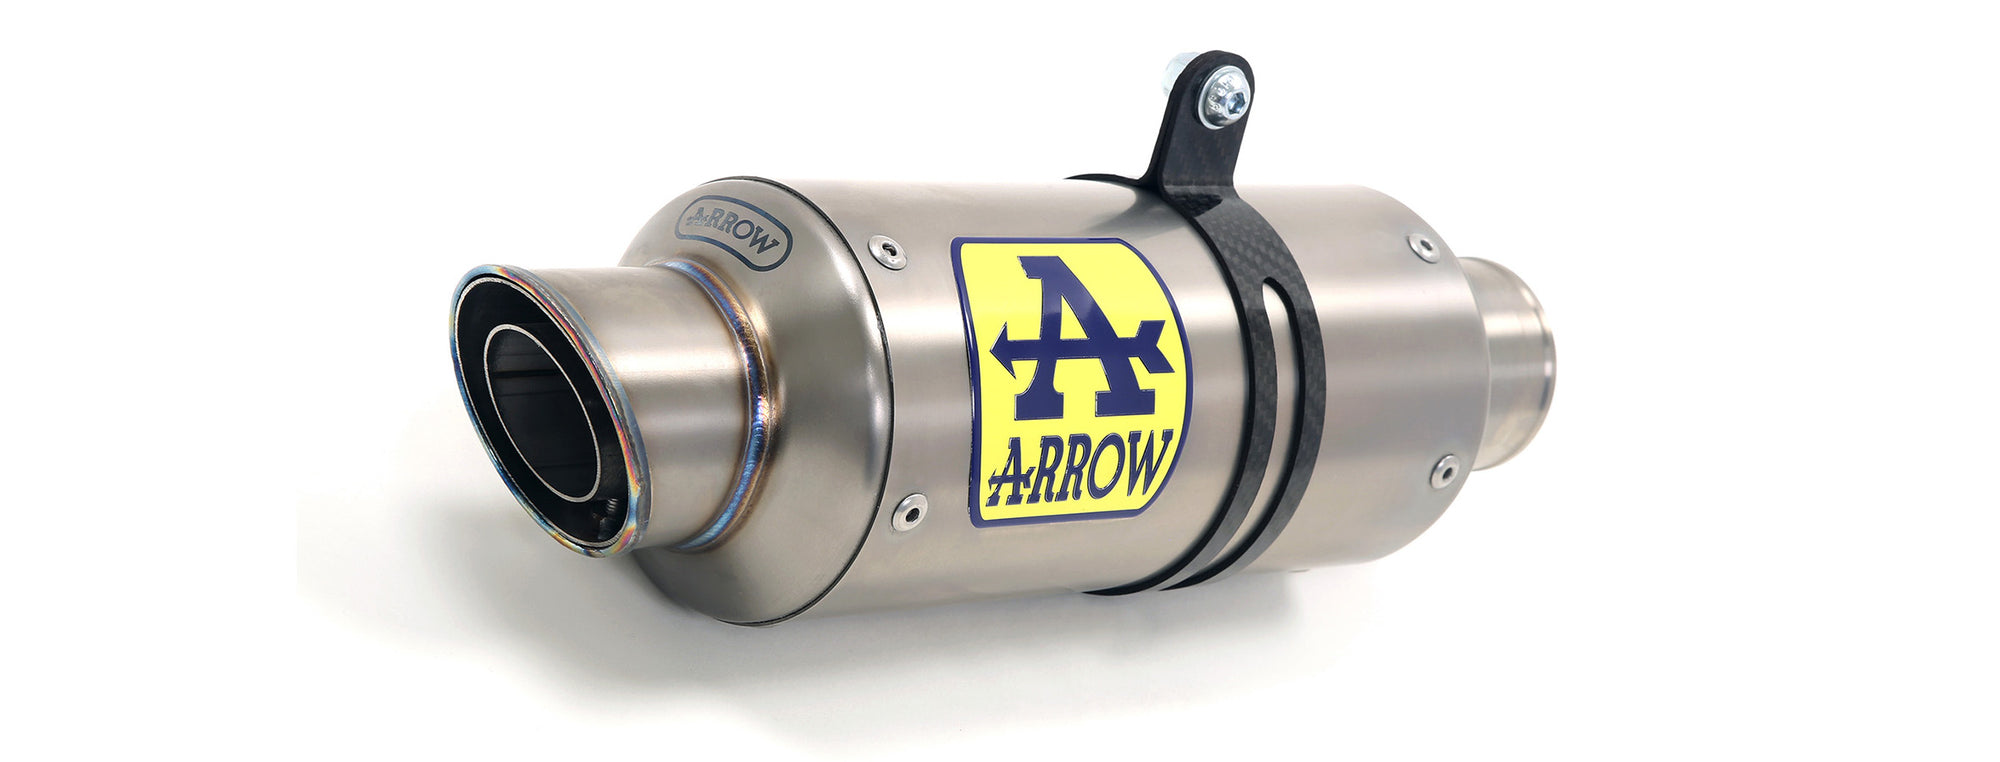 GP2 Exhaust - Suzuki, Exhaust Silencer, Arrow Exhausts - Race and Trackday Parts